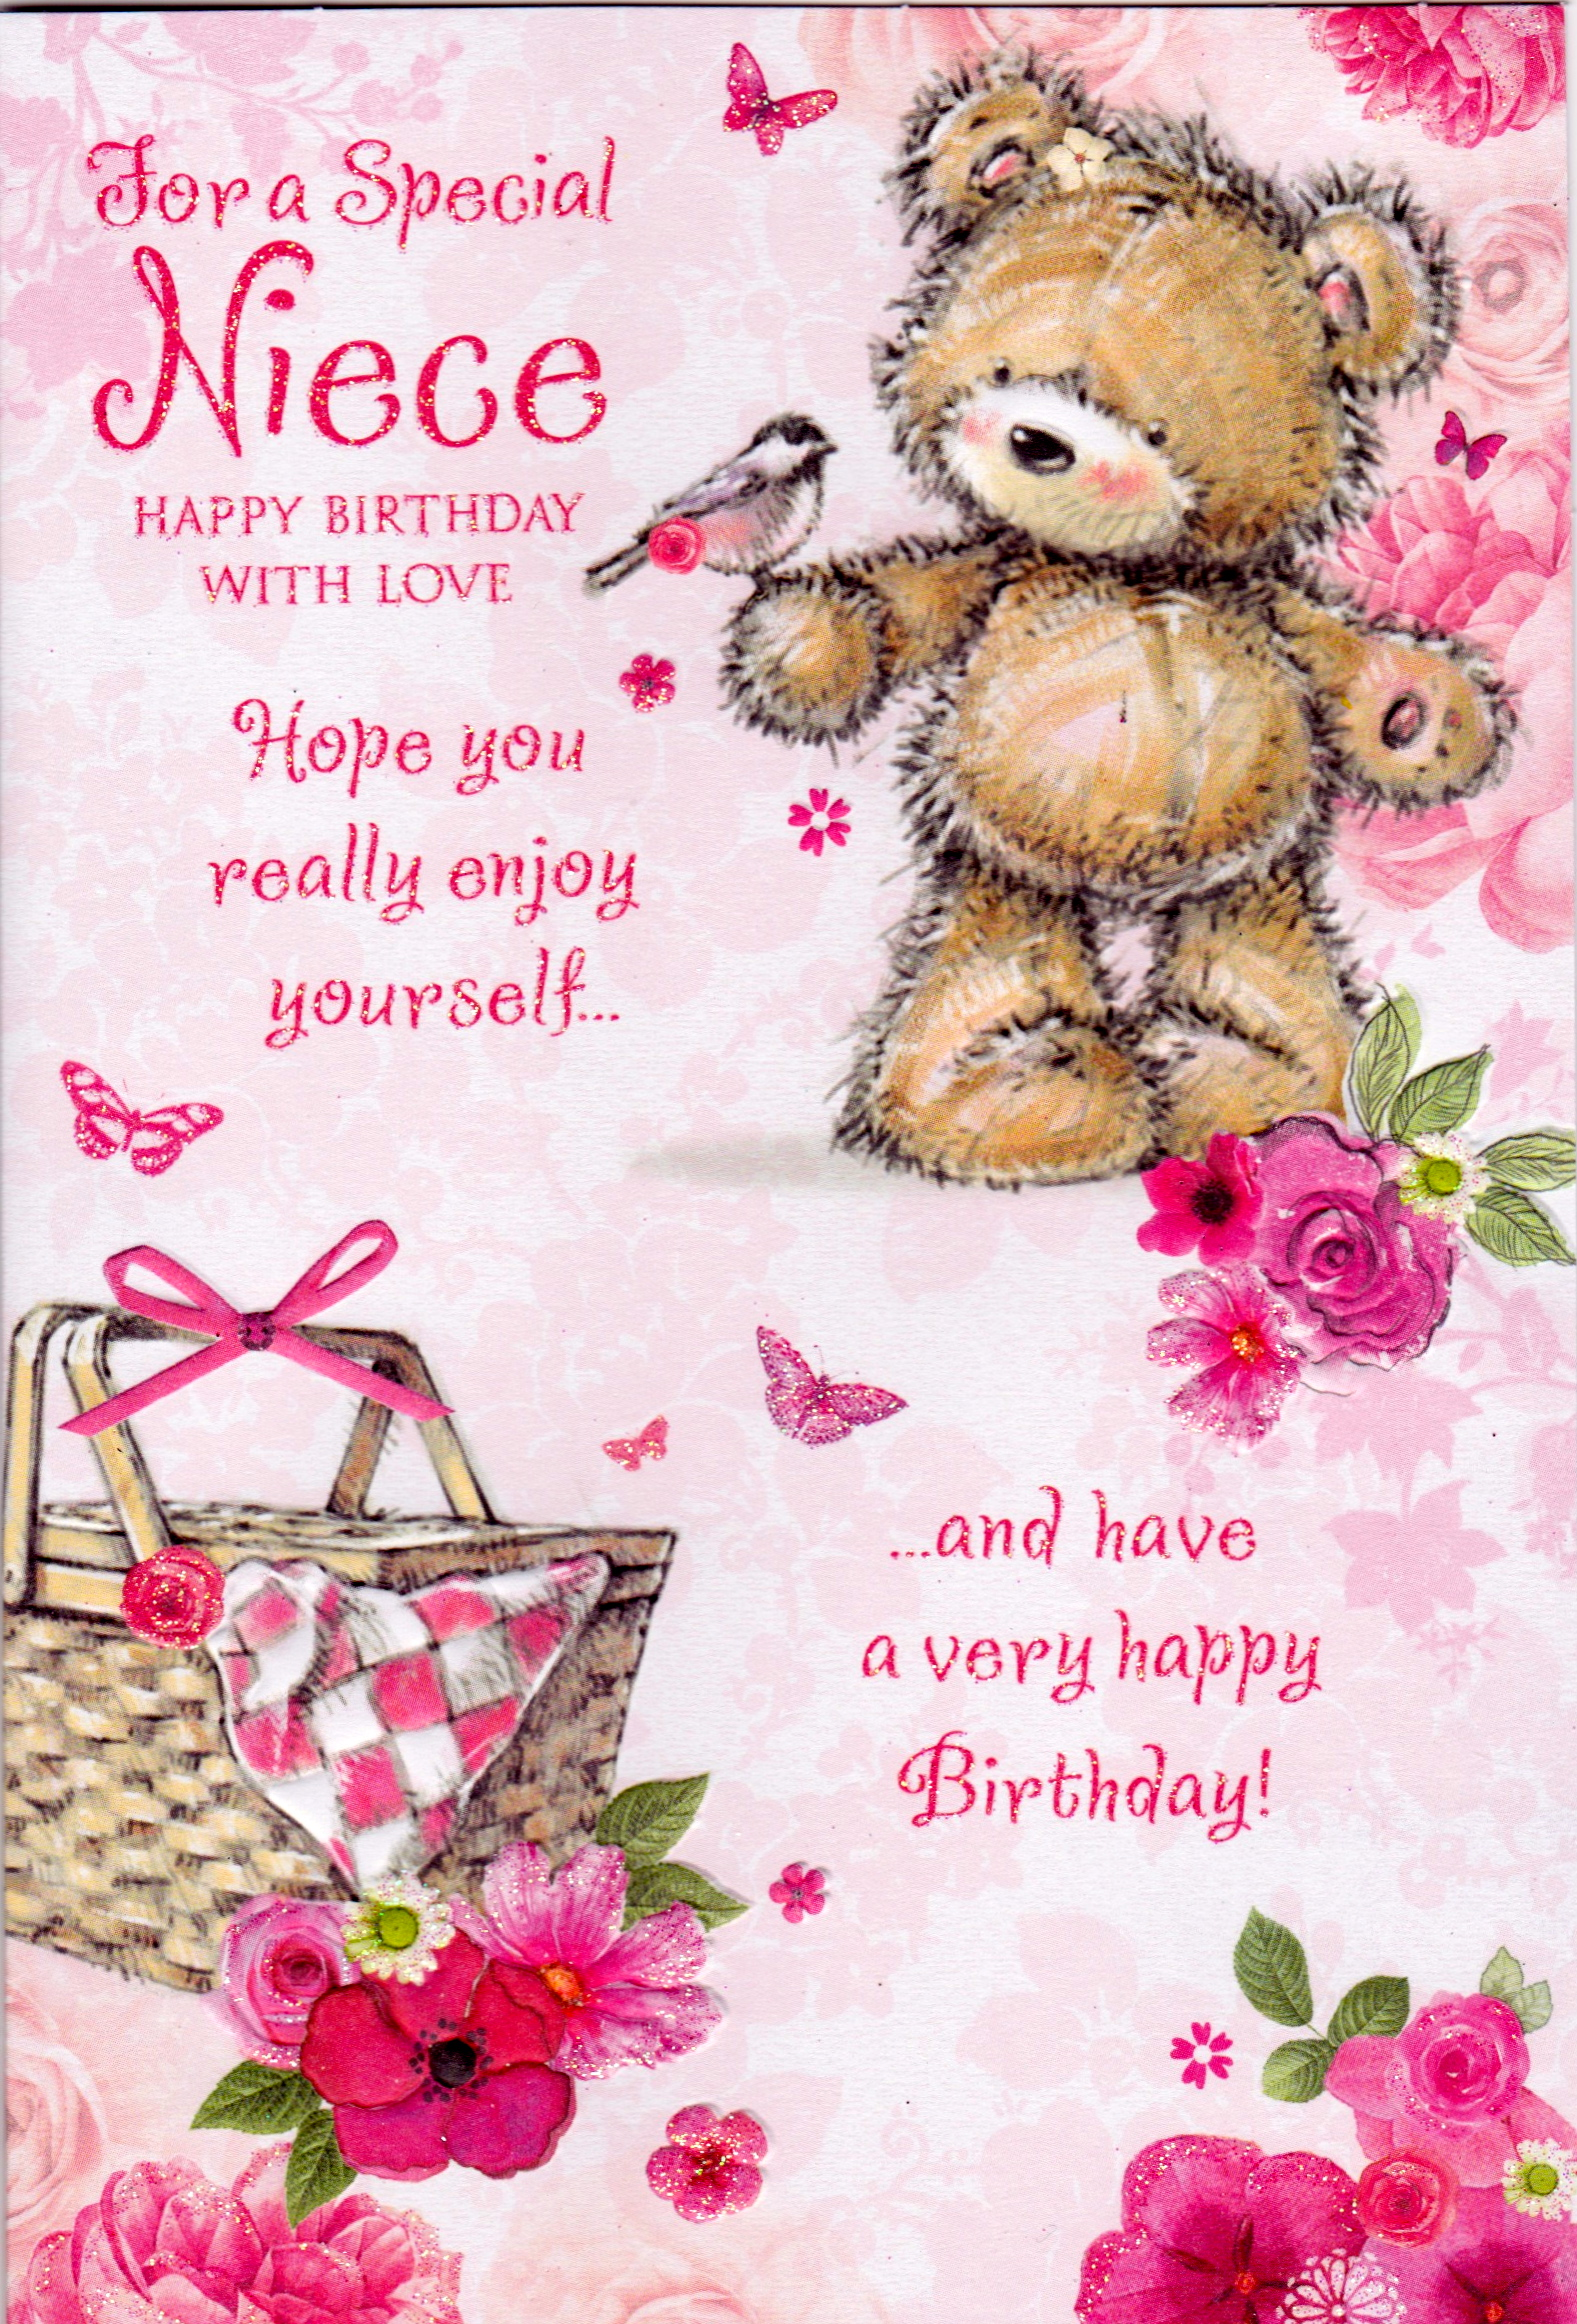 birthday wishes card for niece ; Birthday-Wishes-for-Niece-Free-Cards